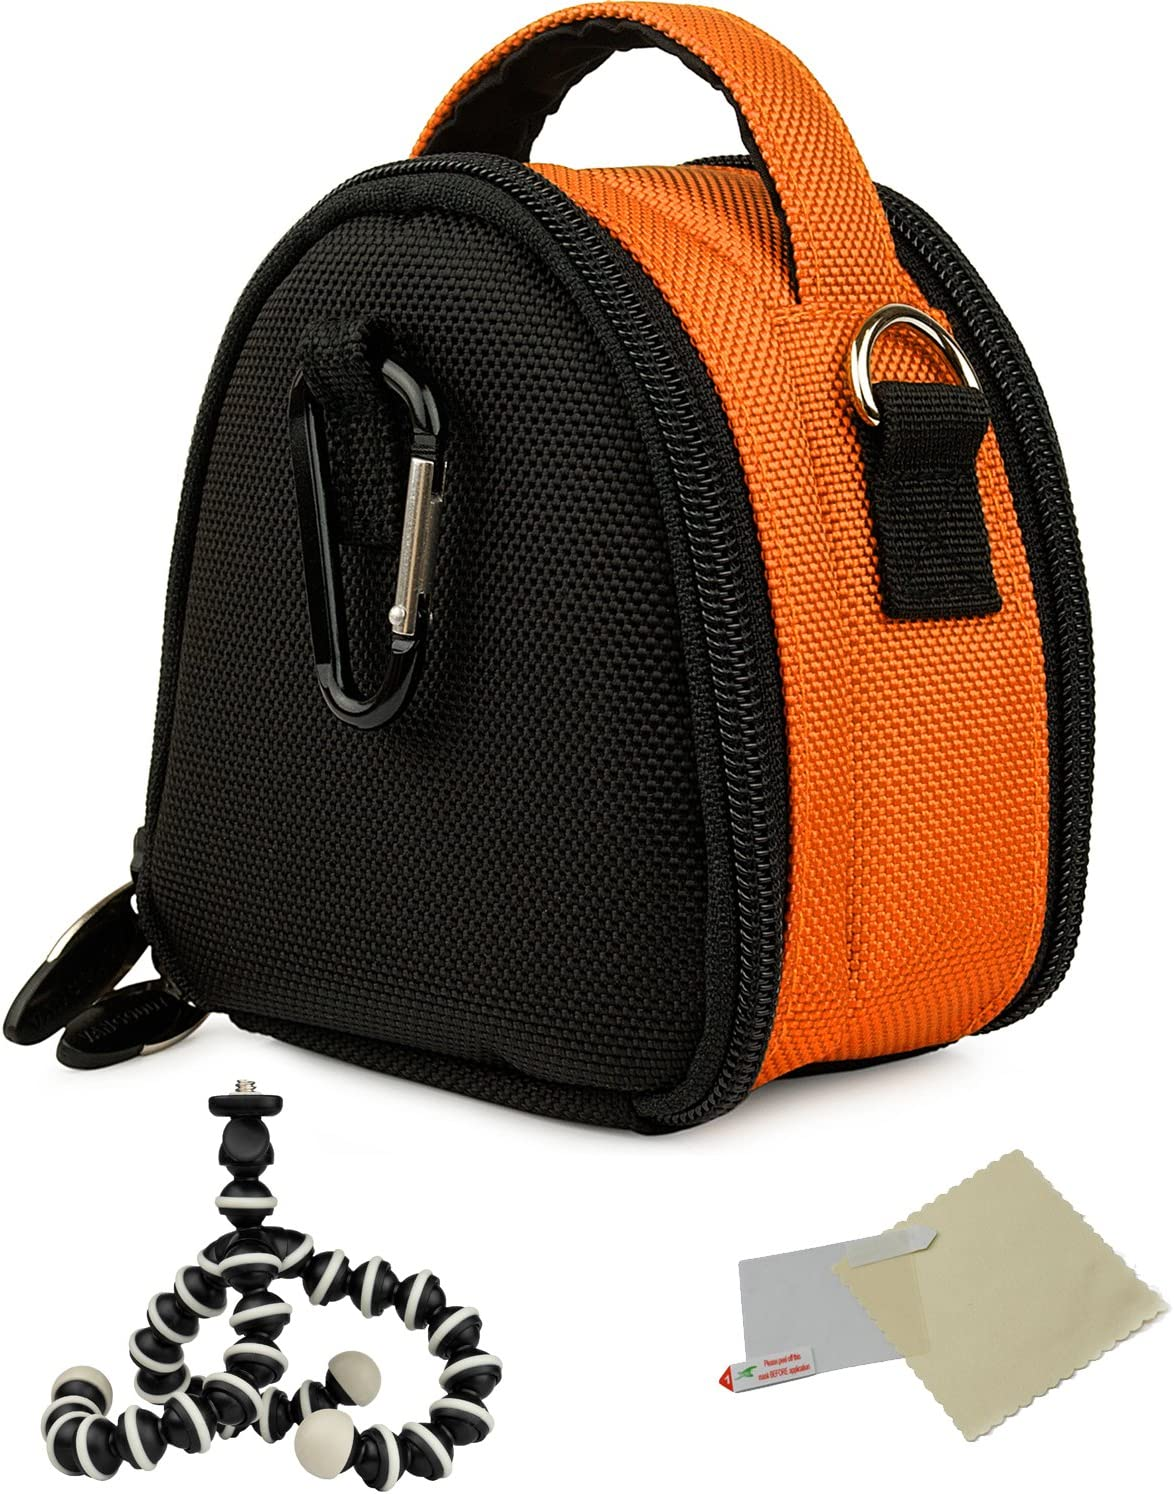 Mini Travel Shoulder Bag Carrying Case NEX C3 Digital Camera and Screen Protector and Mini Tripod for Sony Alpha NEX 5 Orange